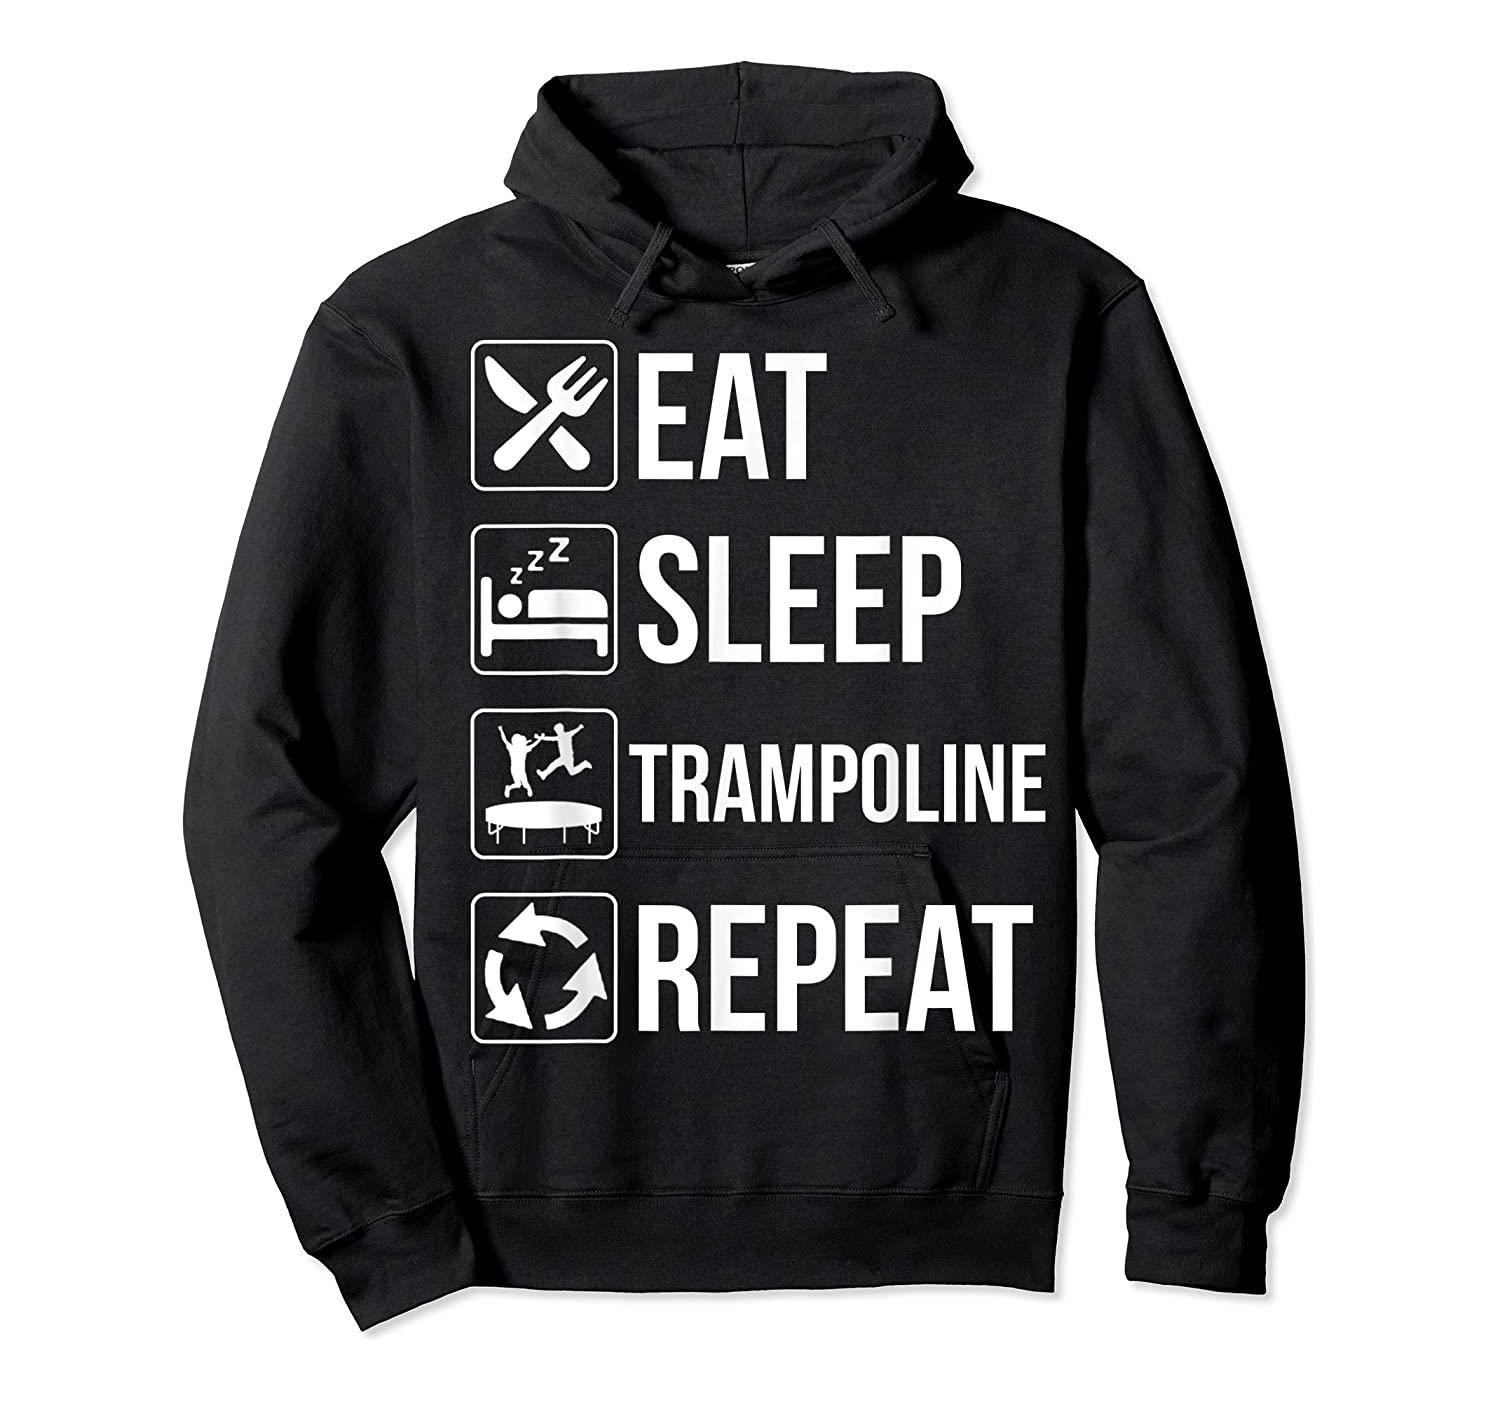 Eat Sleep Trampoline Repeat Funny Gift Shirts Unisex Pullover Hoodie